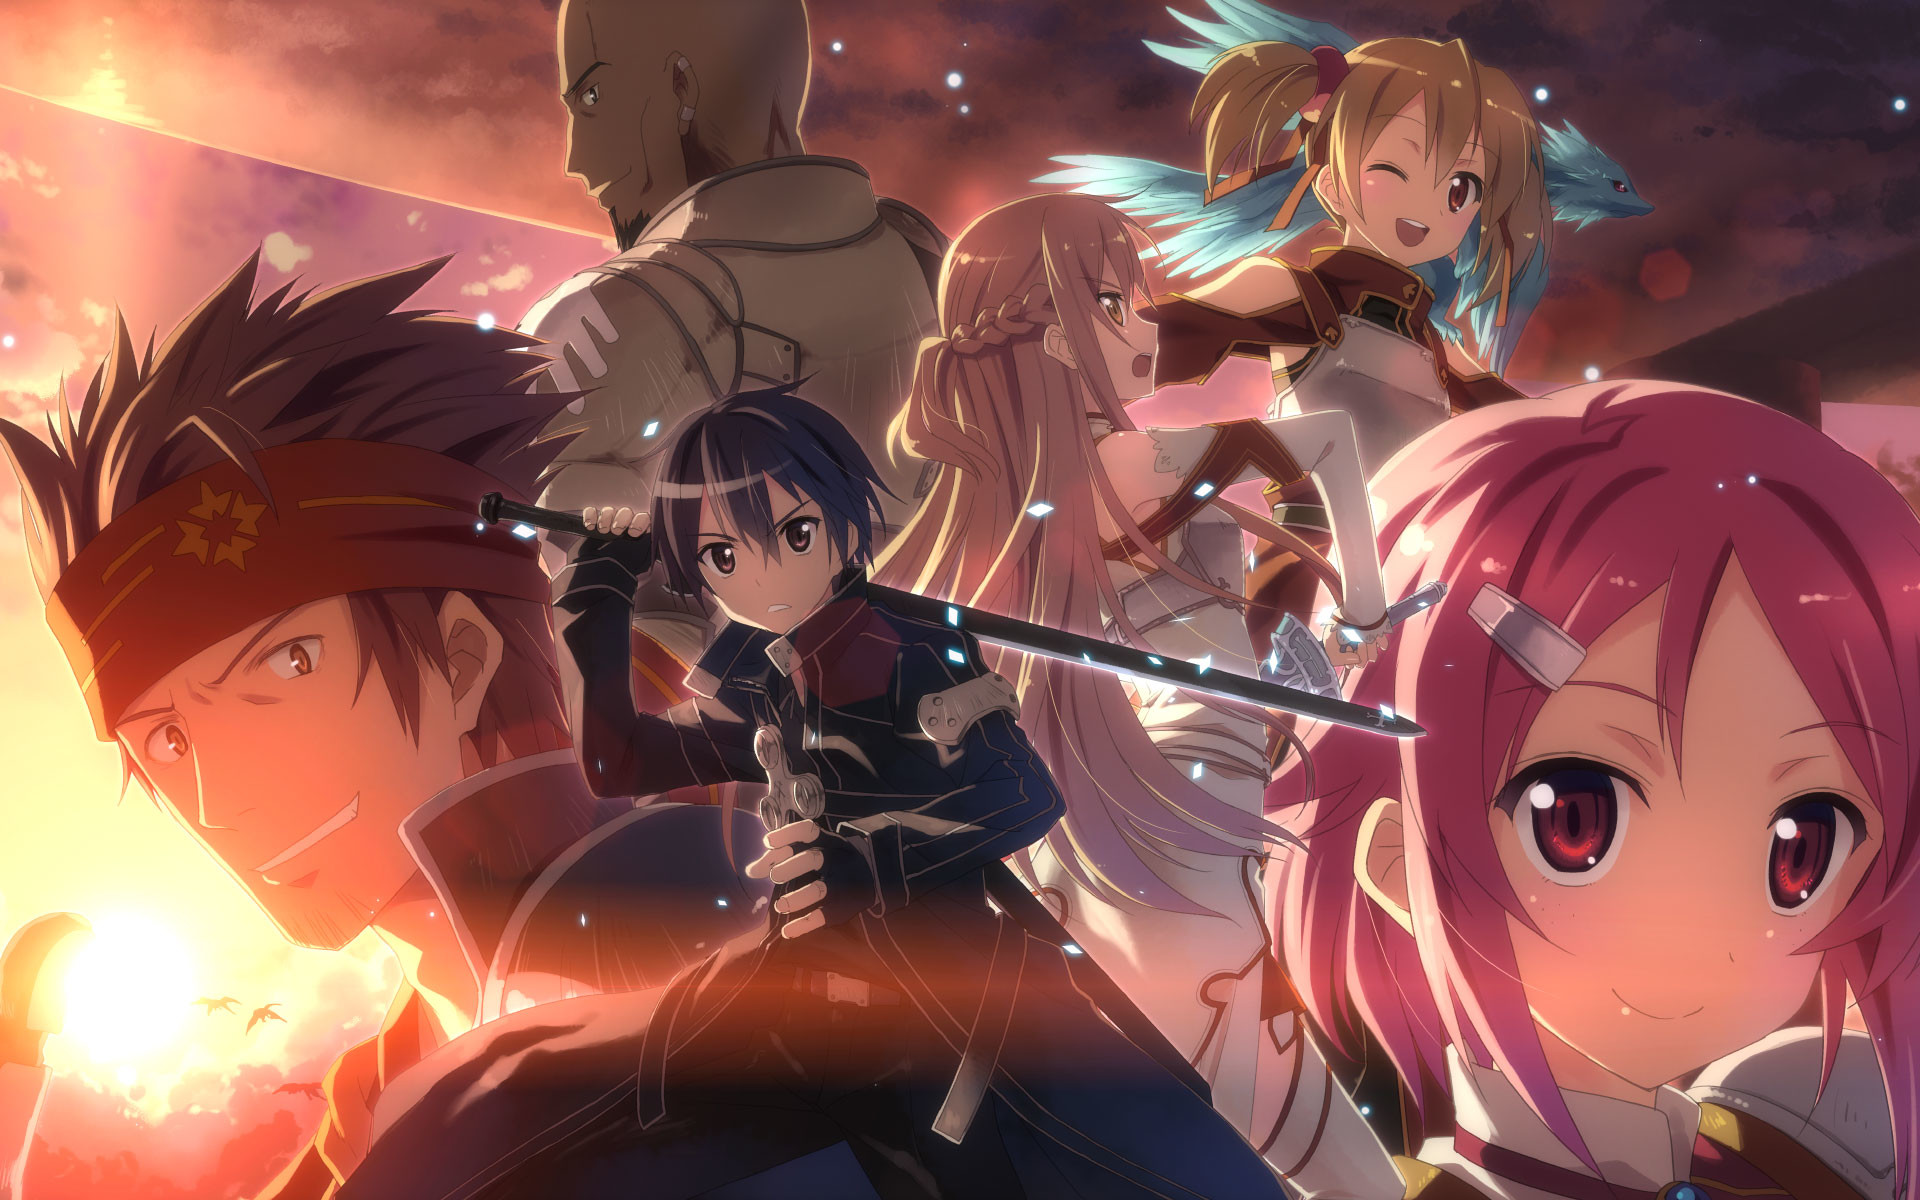 Res: 1920x1200, 10 Unique Sword Art Online Wallpapers Daily Anime Art - HD Wallpapers